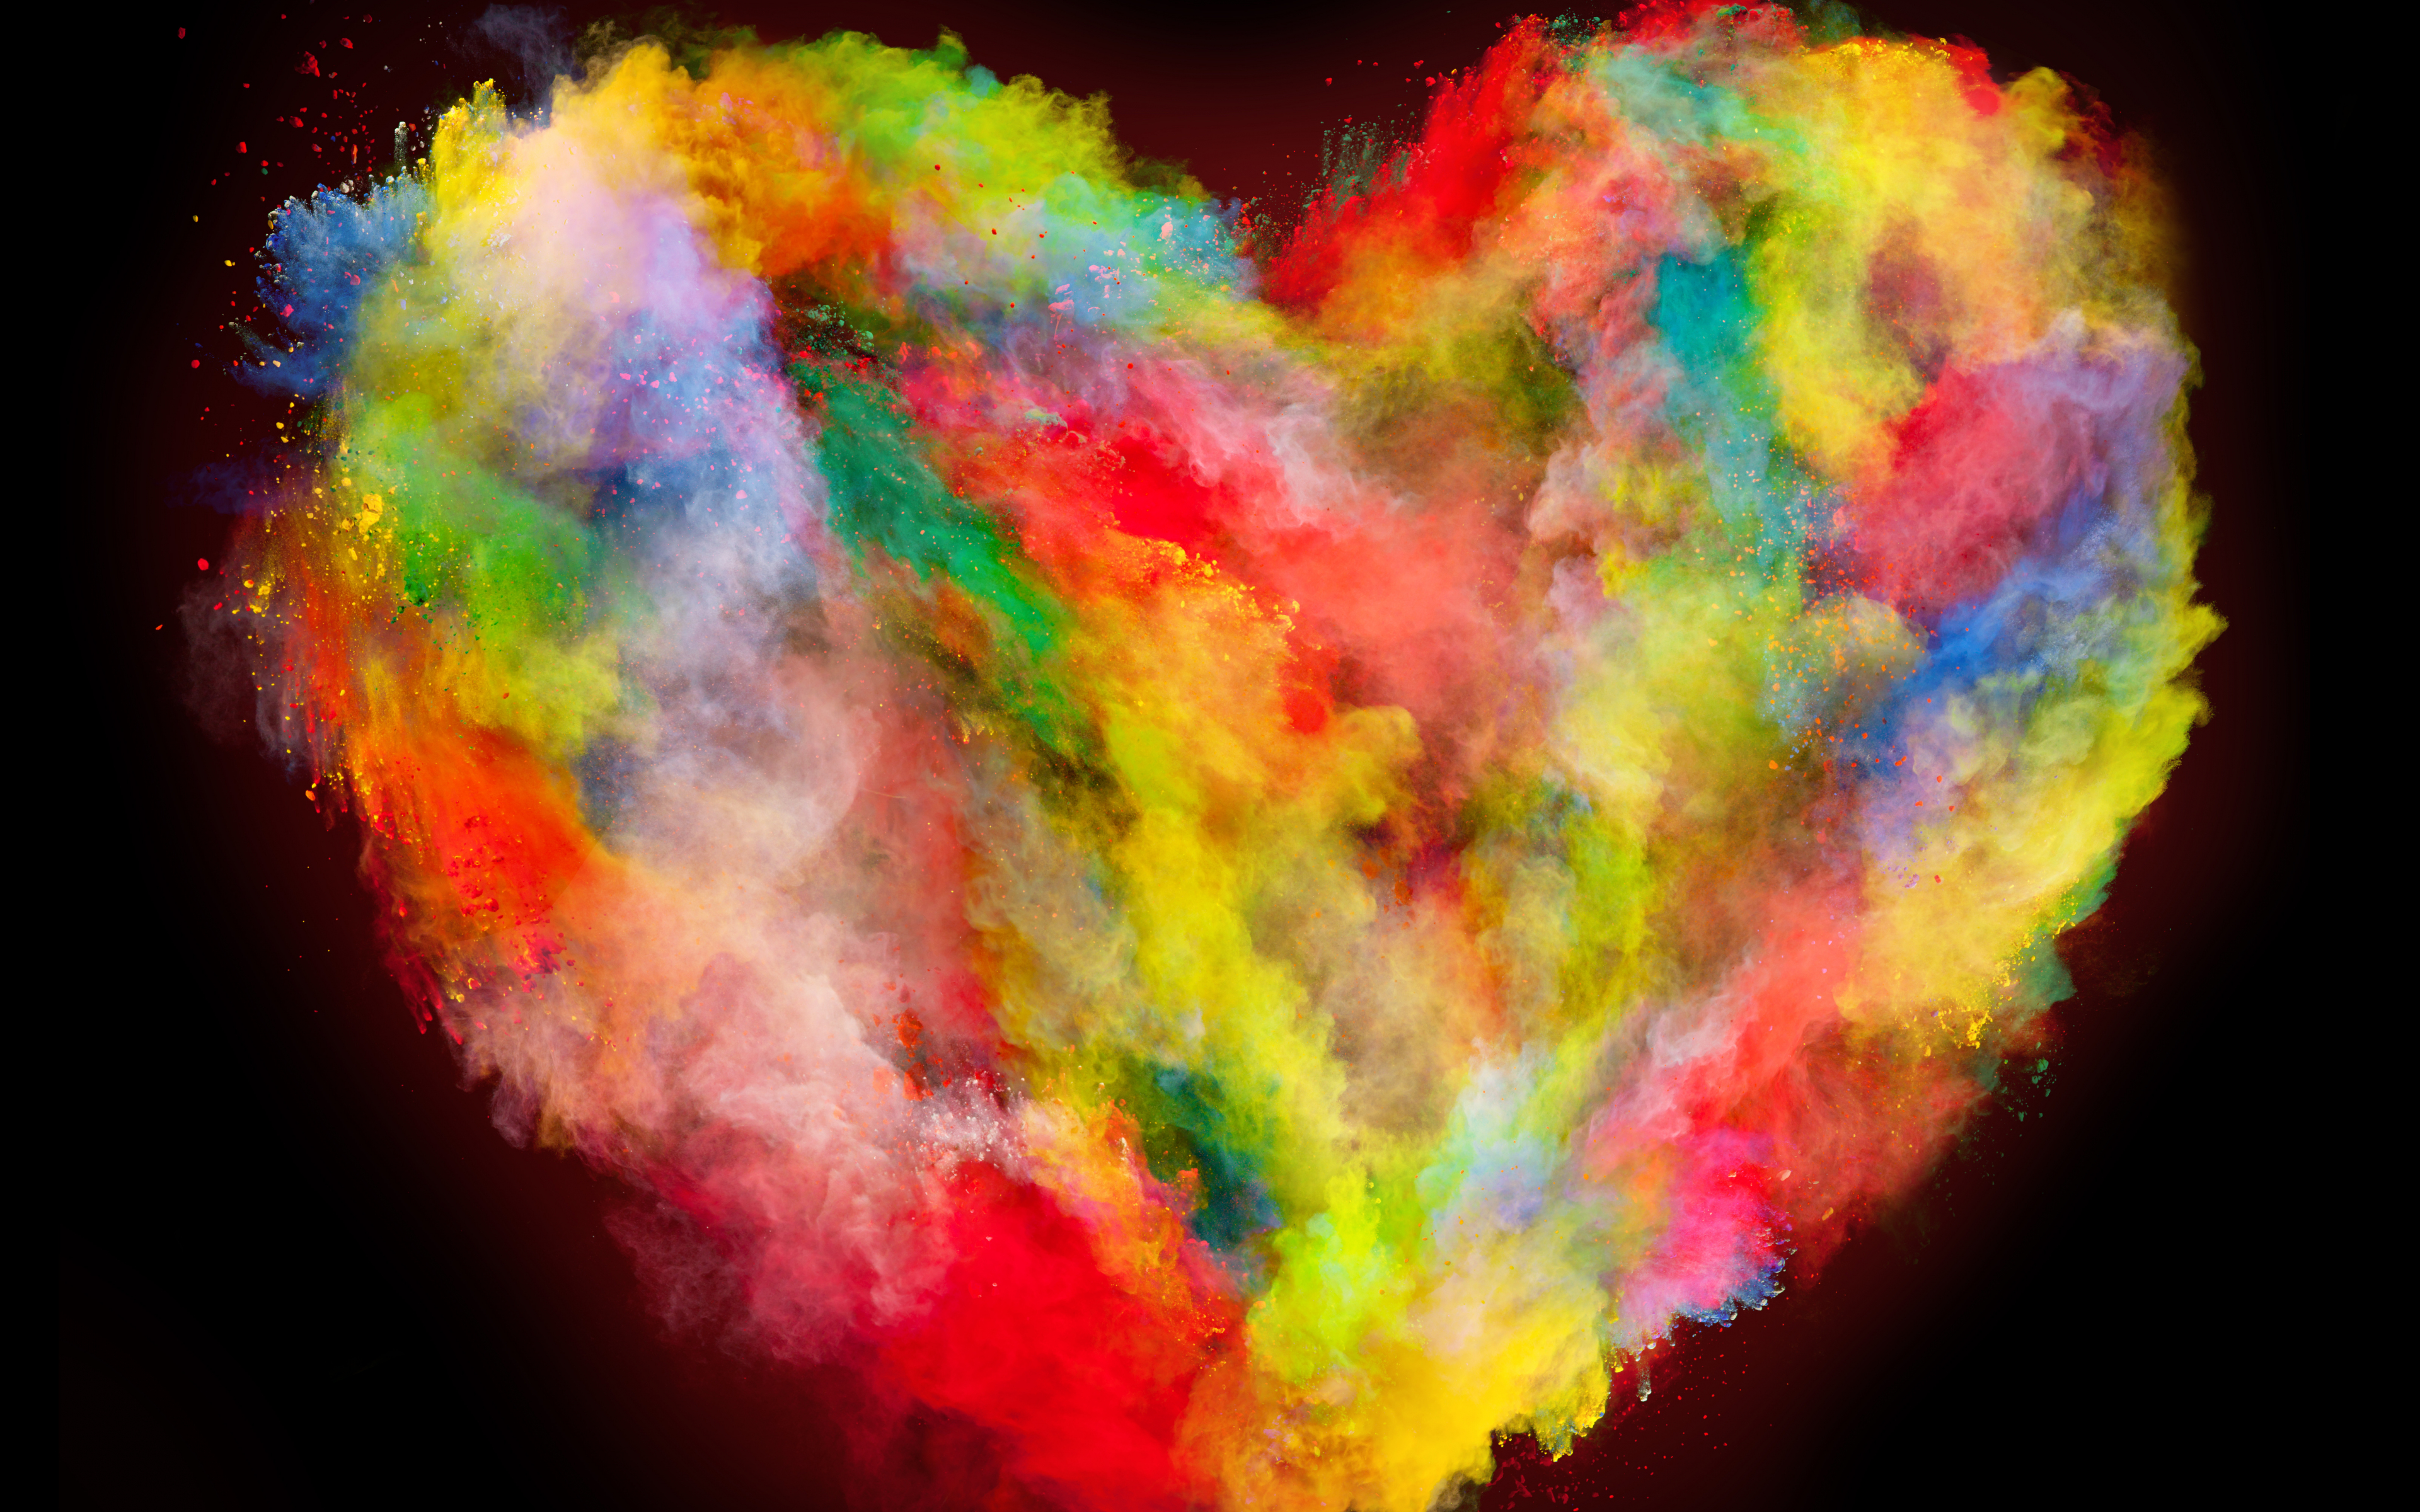 Download 3840x2400 Wallpaper Heart Colorful Explosion